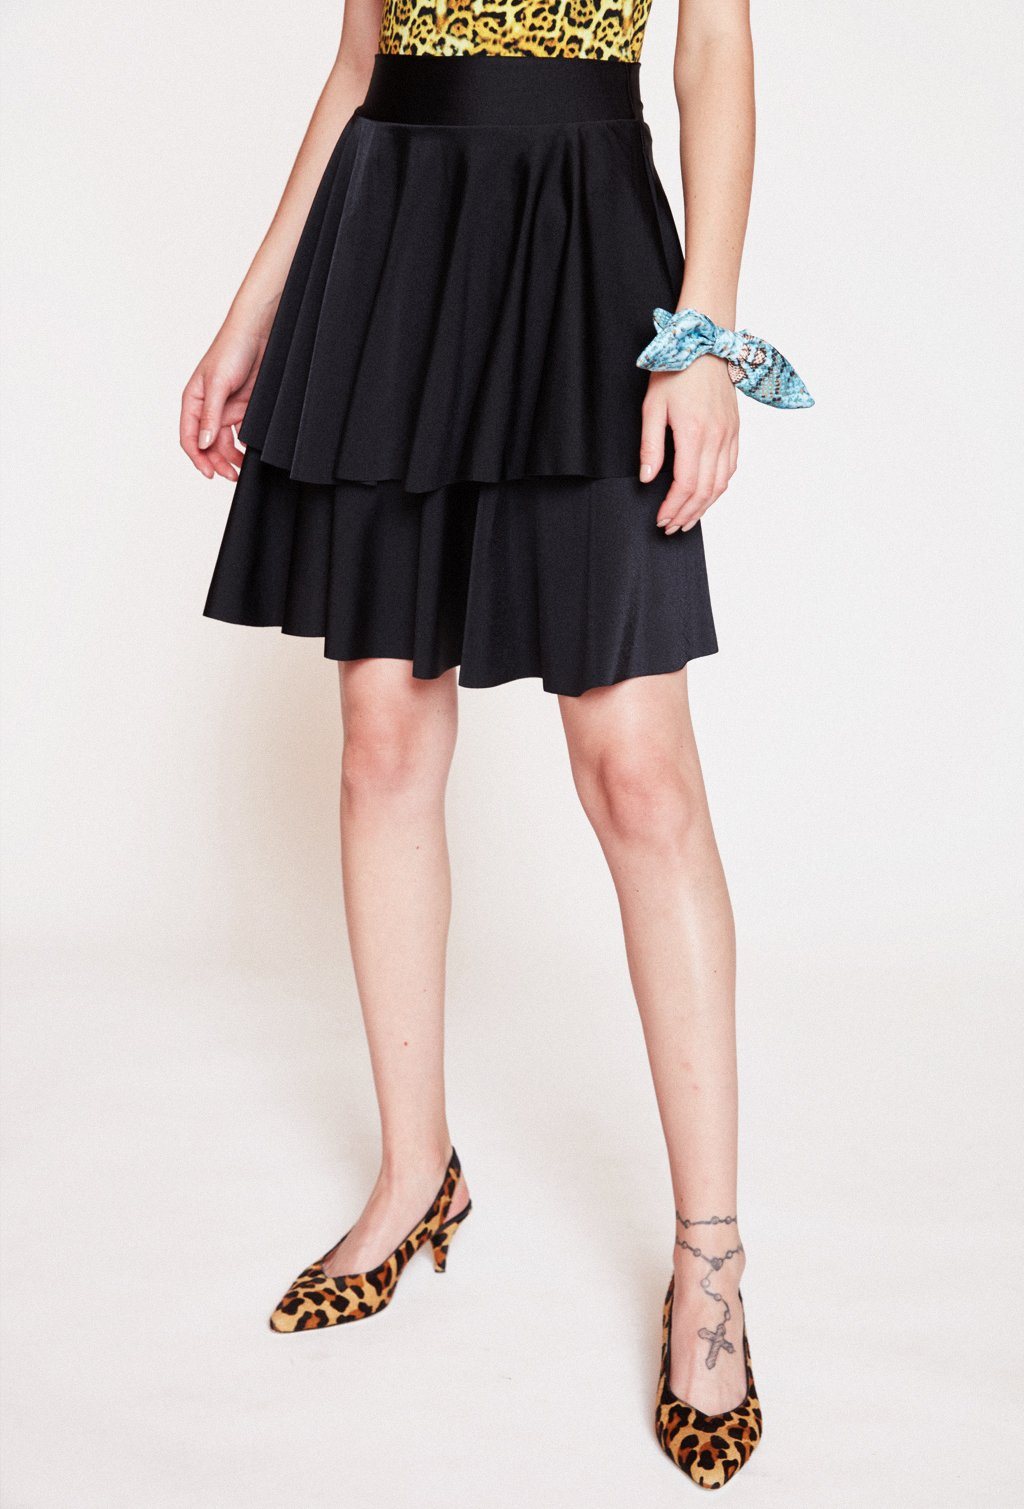 PAME SHORT BLACK SKIRT